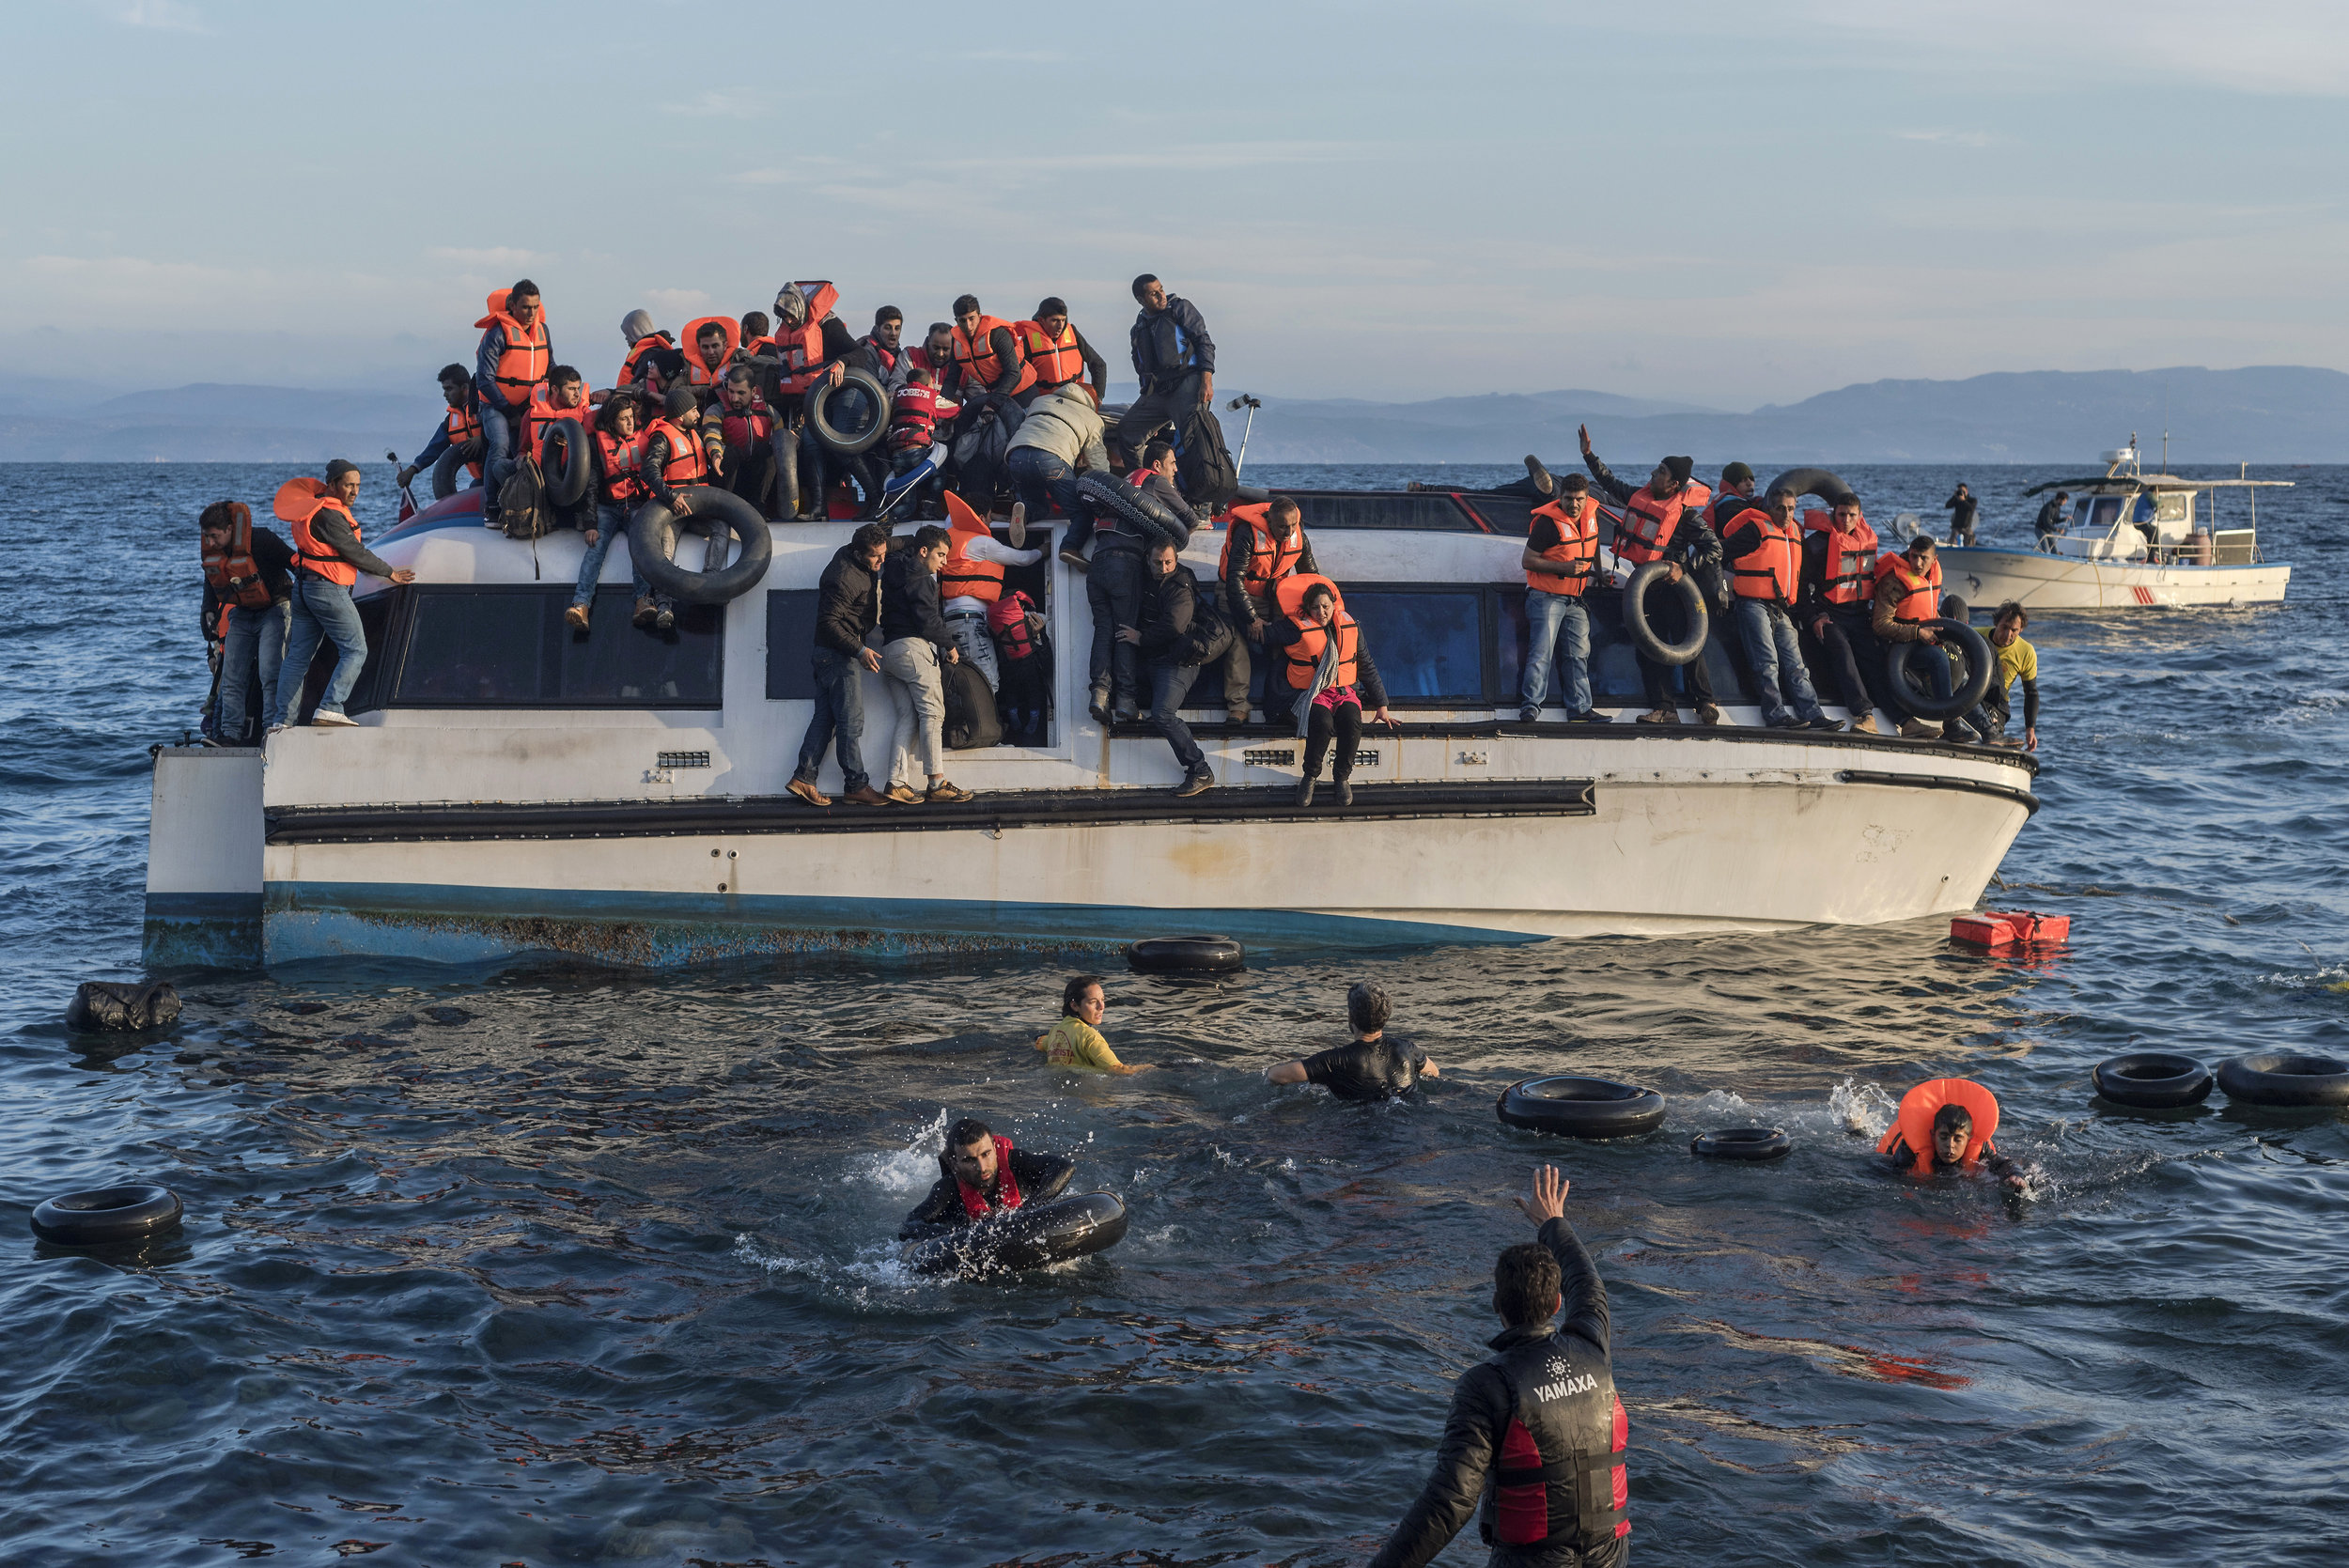 Photograph of Syrians and Iraq refugees arrive at Skala Sykamias Lesvos Greece By Ggia. CC-BY-SA-4.0